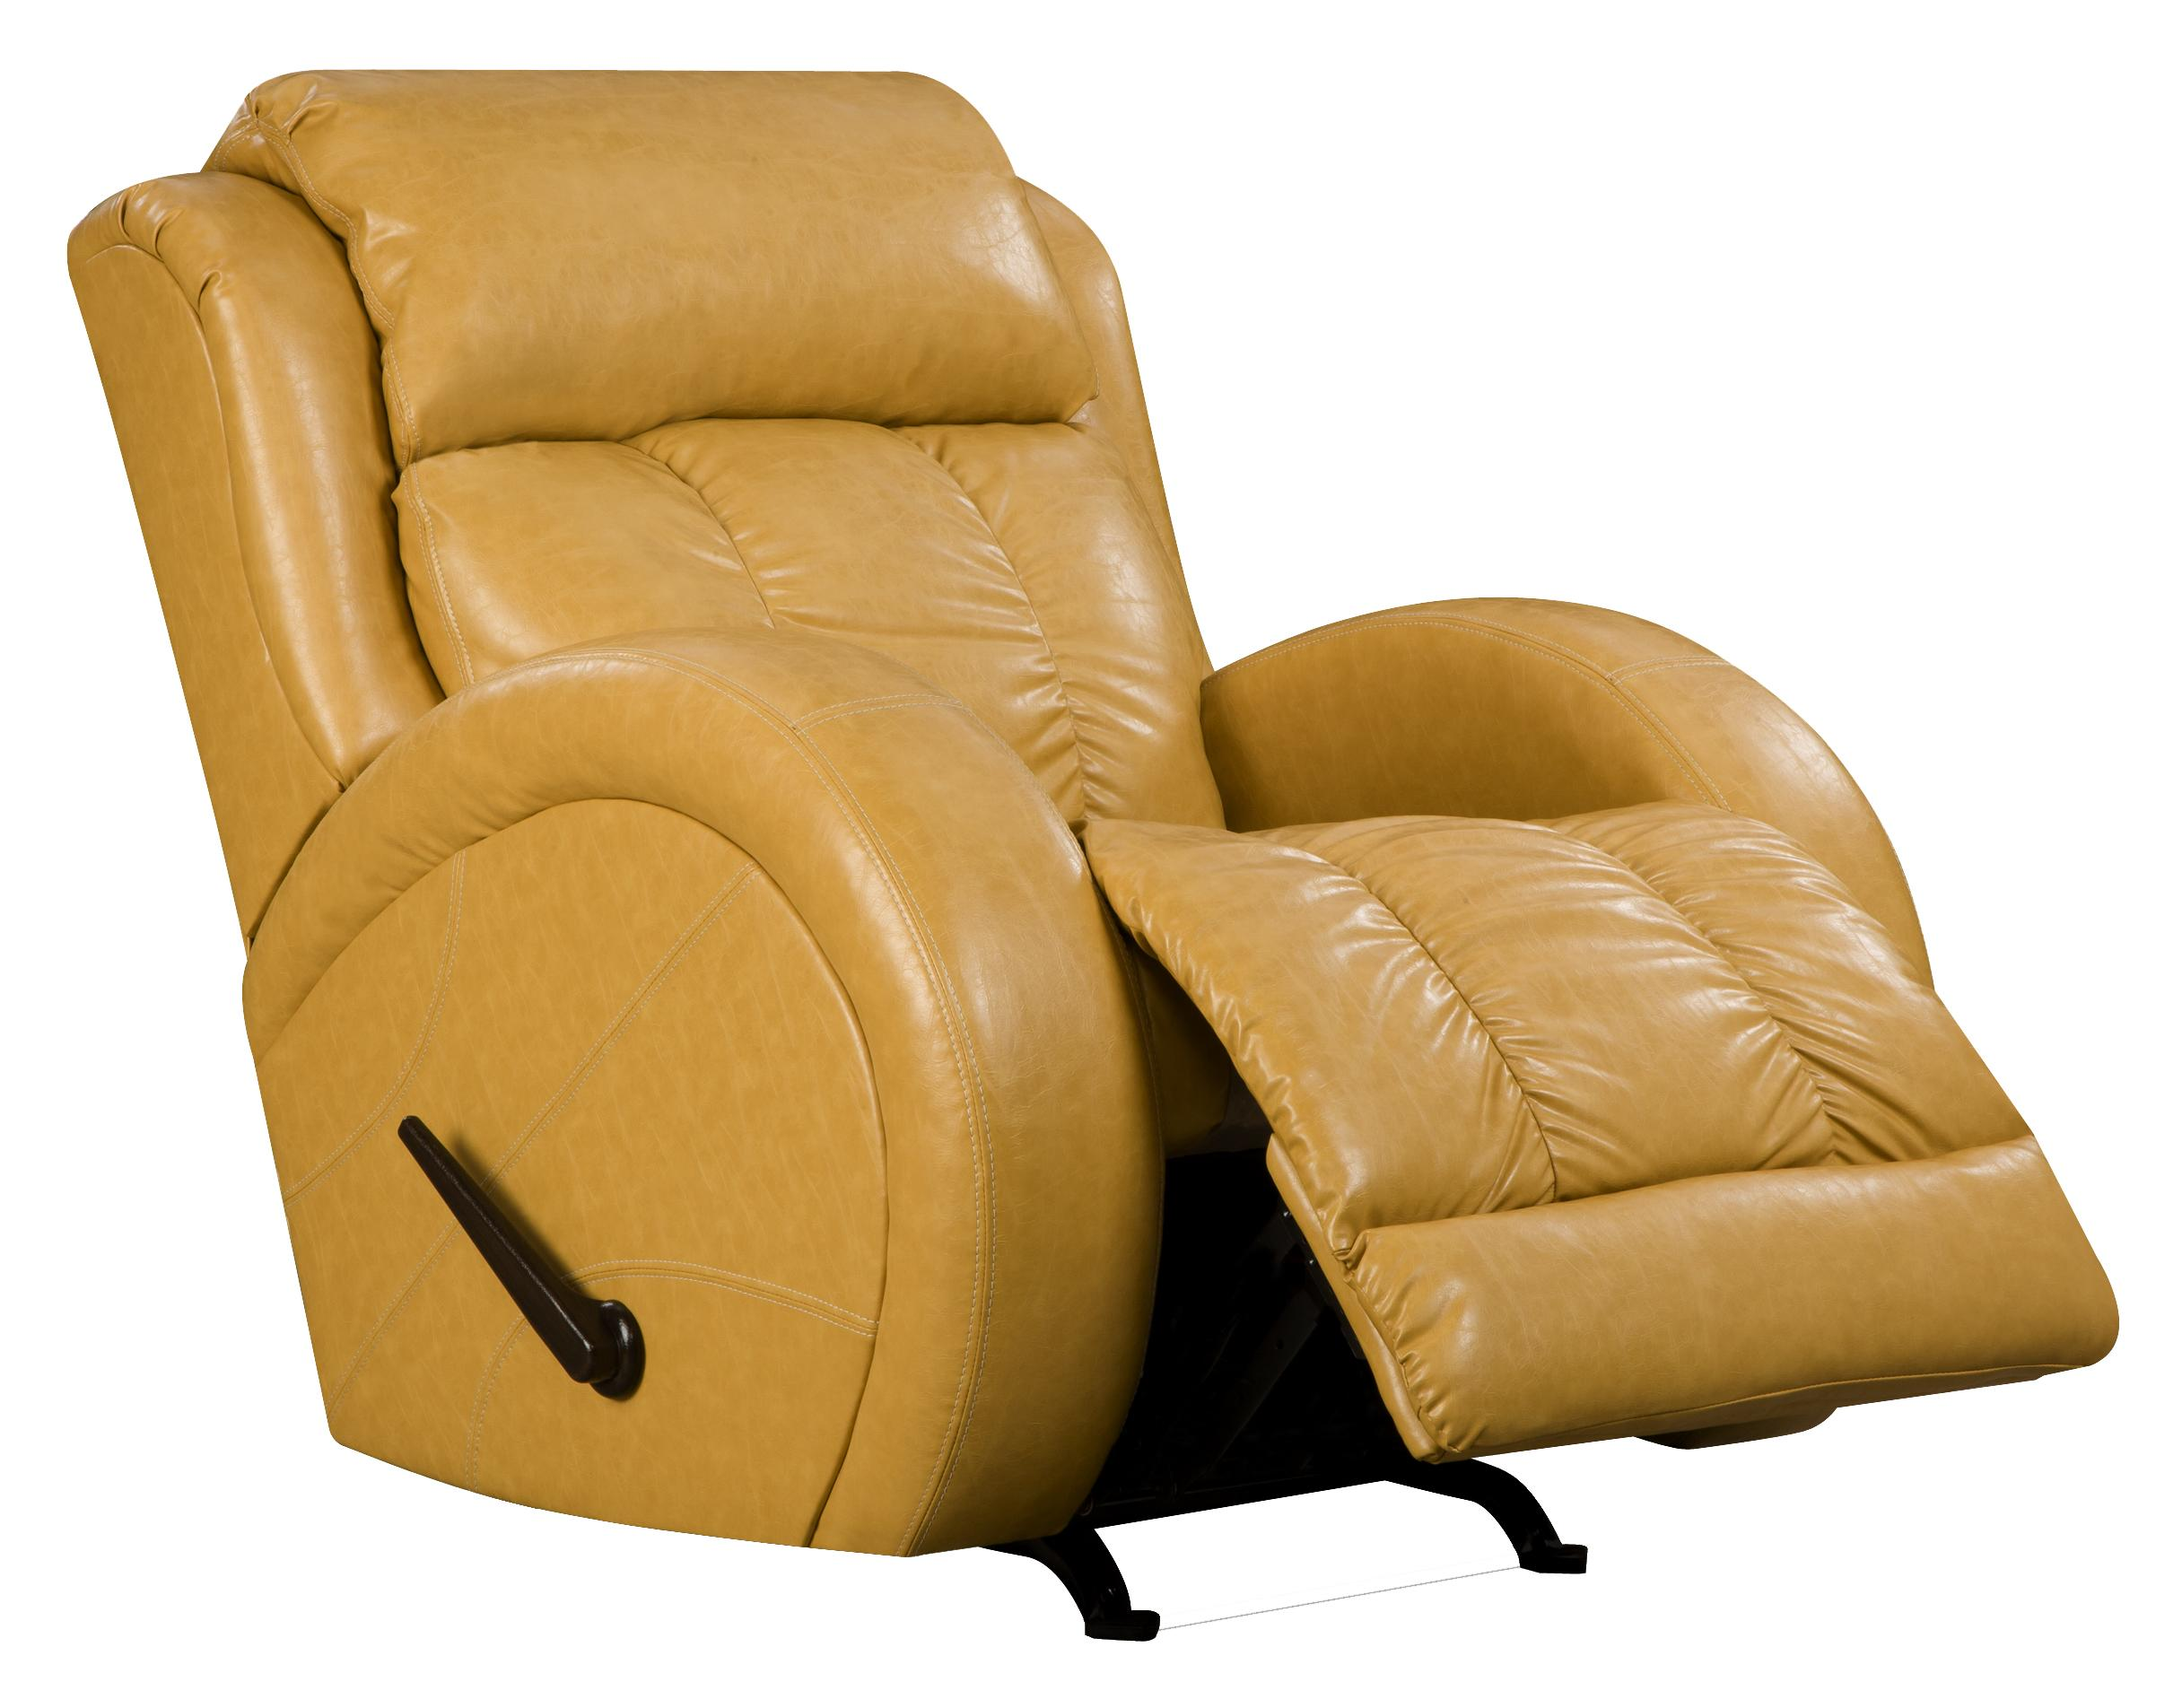 Southern motion recliners rocker recliner with sport style fashion furniture three way recliners - Stylish rocker recliner ...